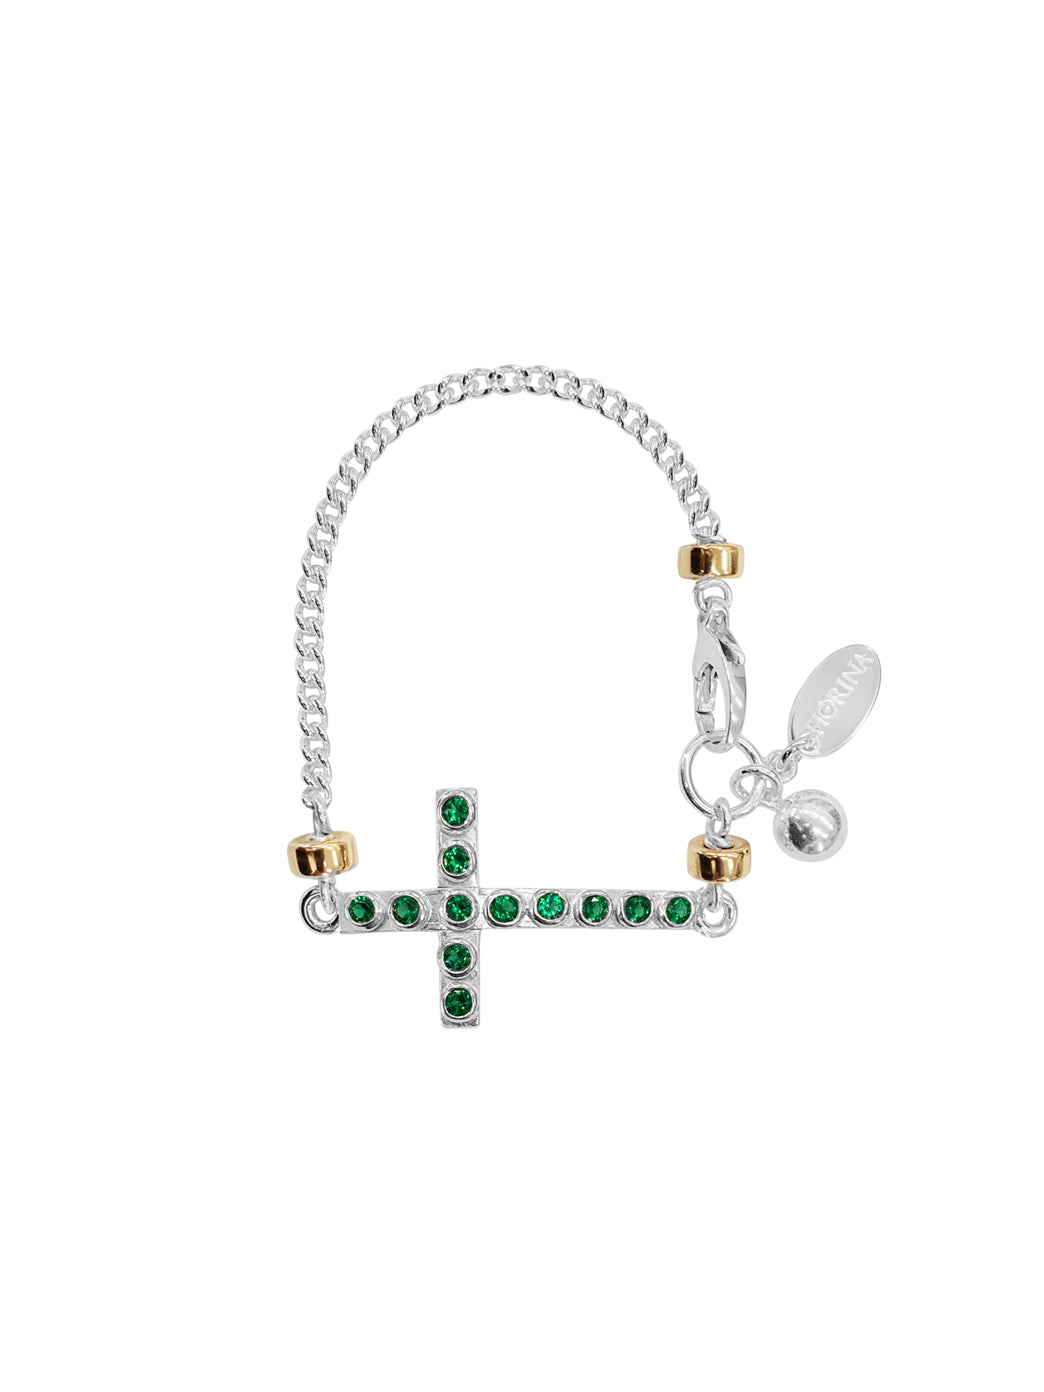 Fiorina Jewellery La Vie Side Cross Bracelet Emerald